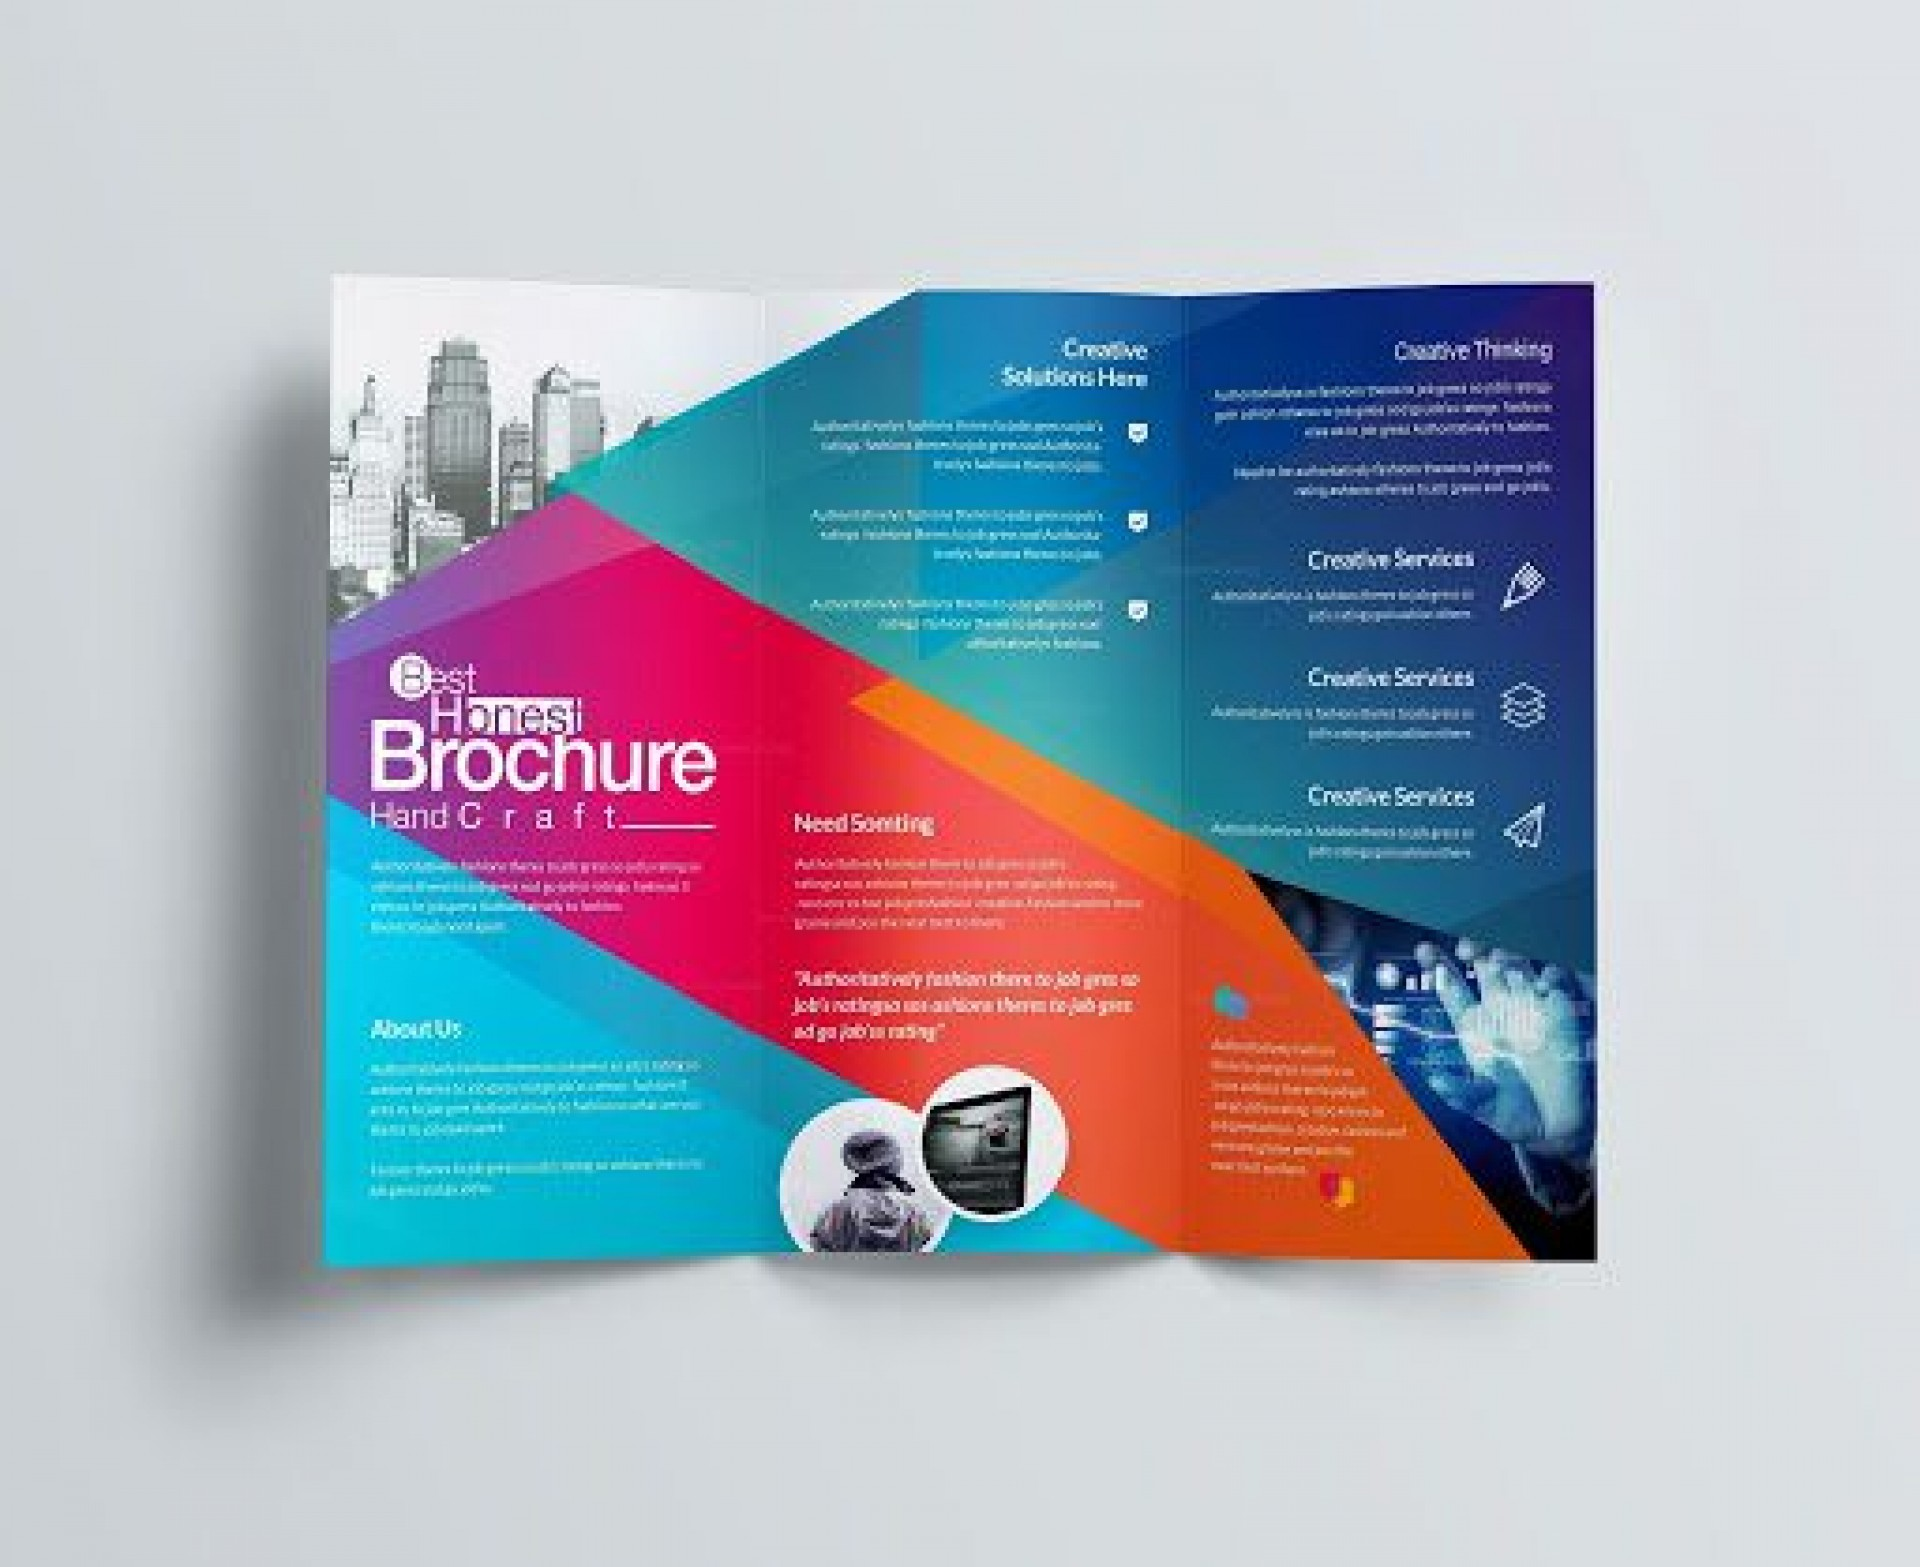 009 Awful Download Brochure Template For Microsoft Word 2007 High Definition  Free1920